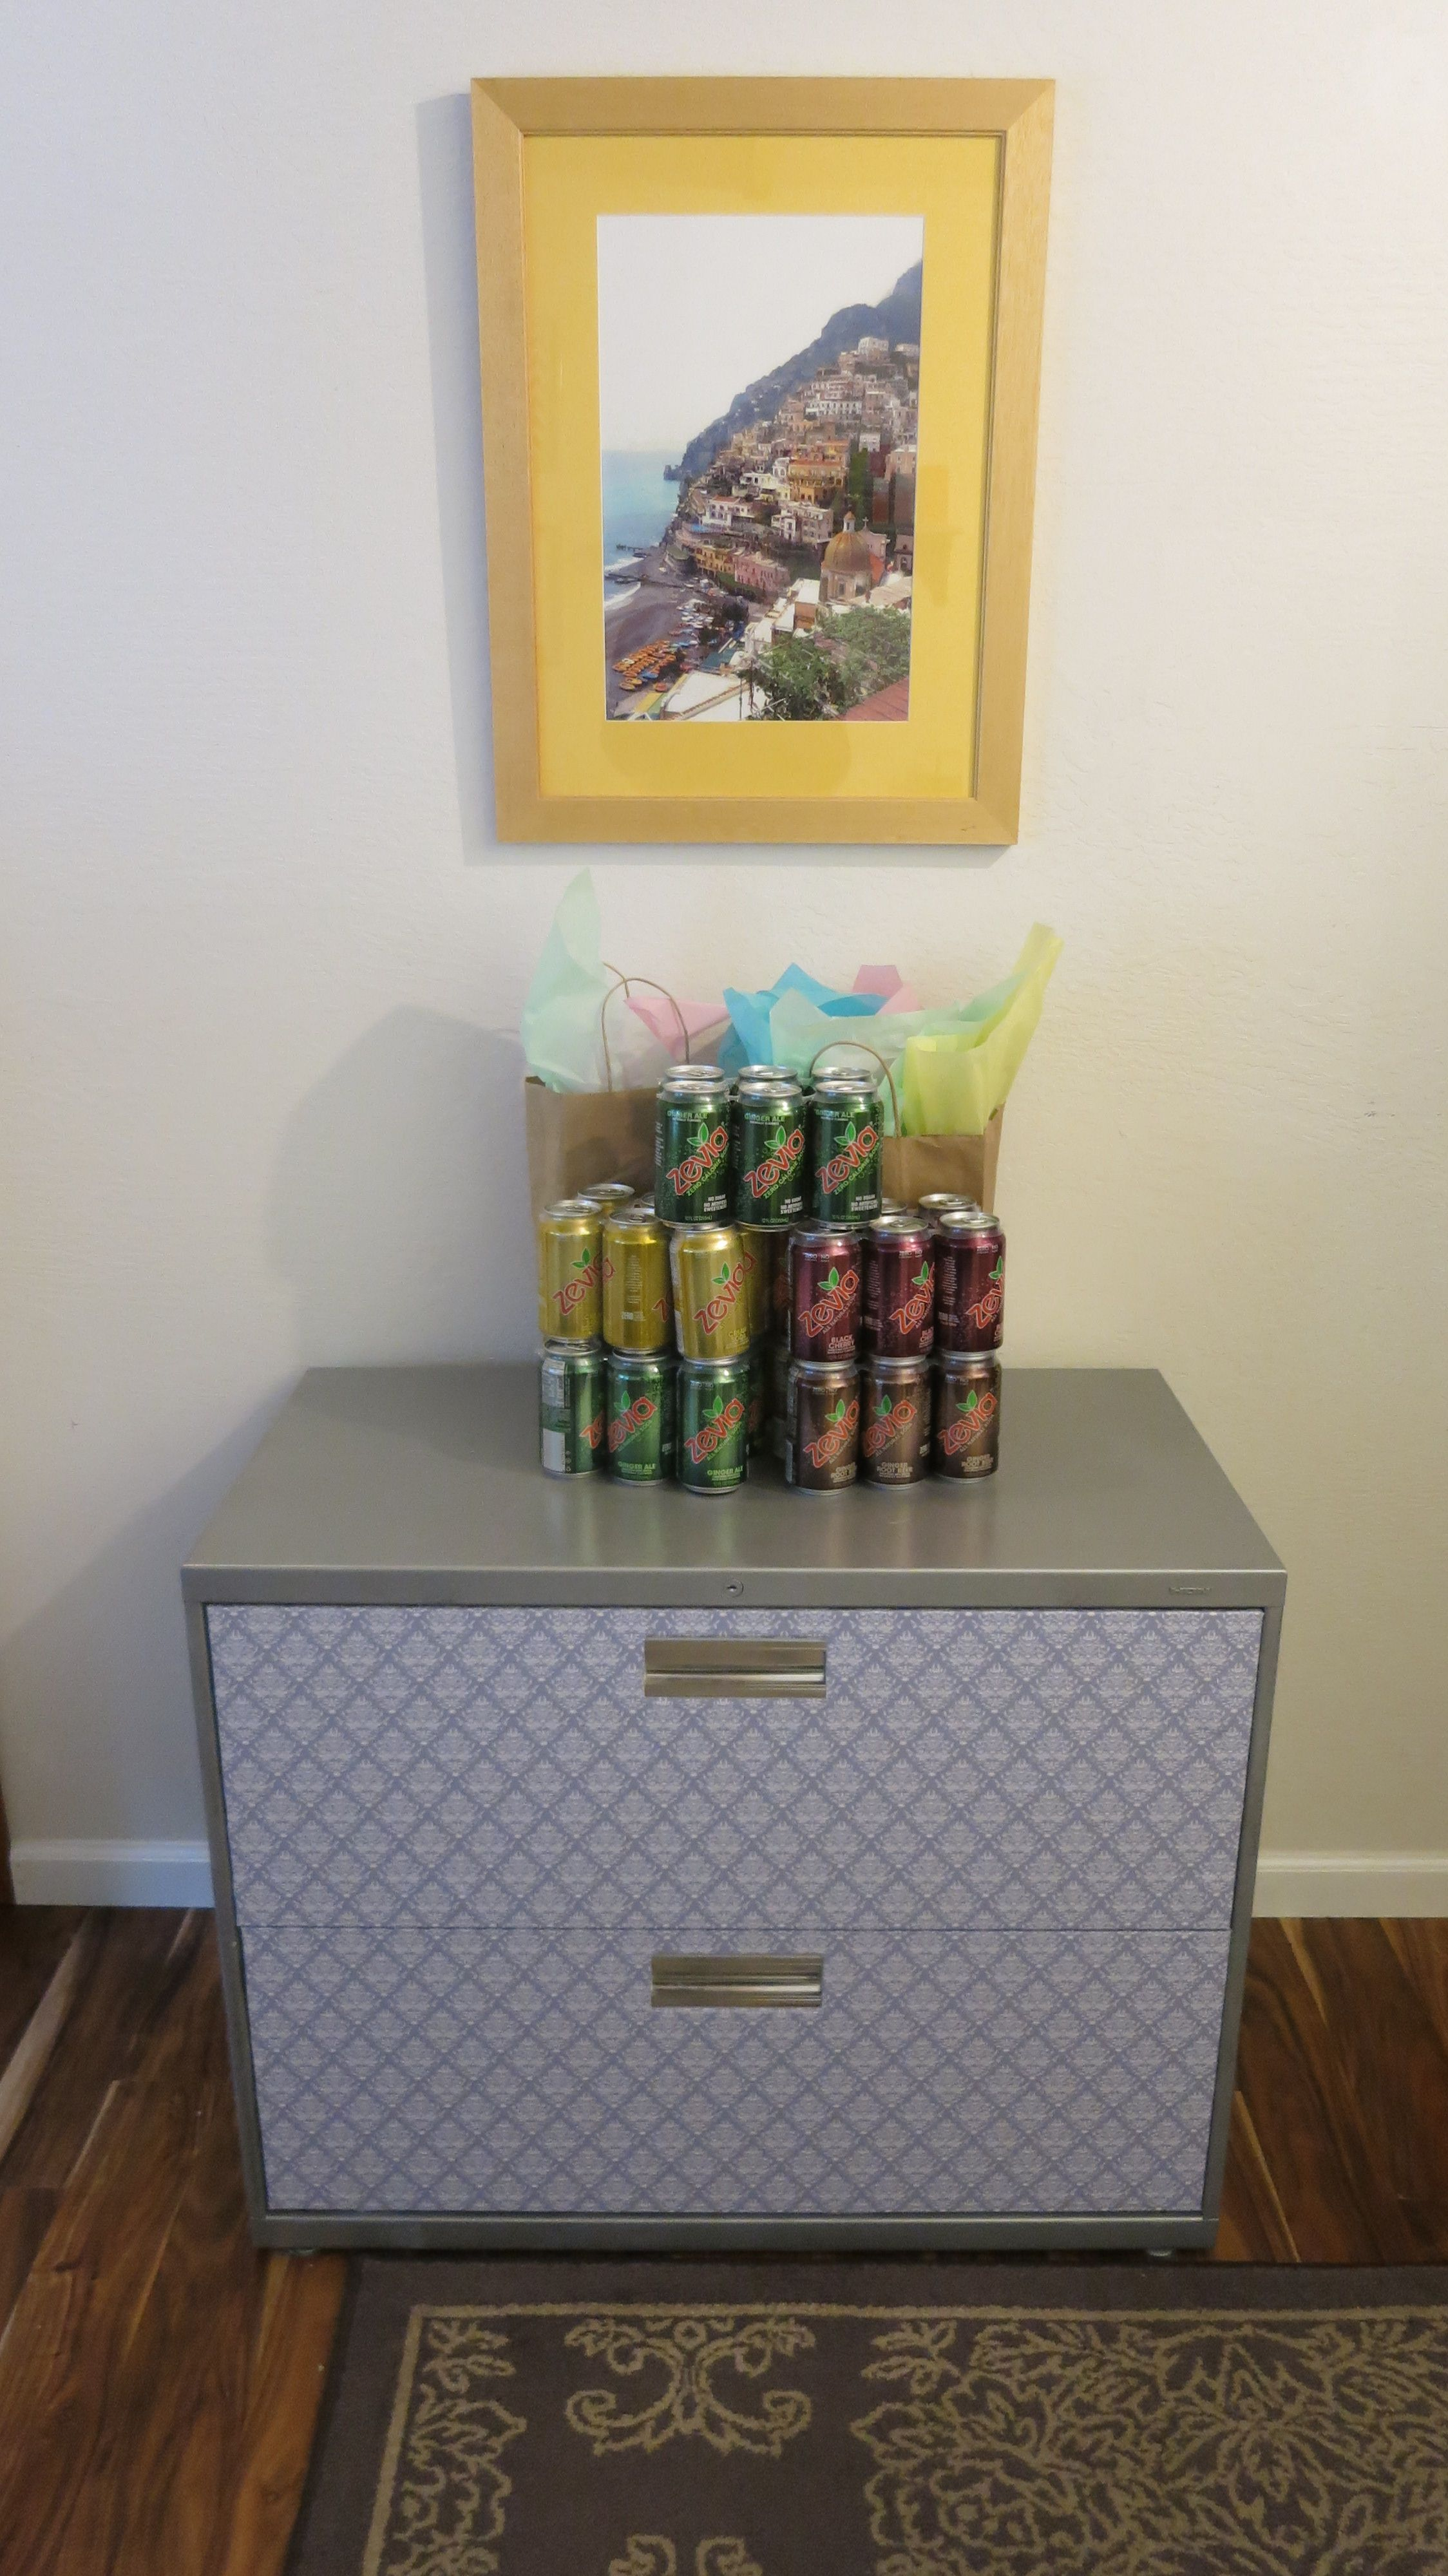 Diy Refinished And Painted Cabinet Reviews: Refinished Filing Cabinet! Silver Spray Paint And Shelf